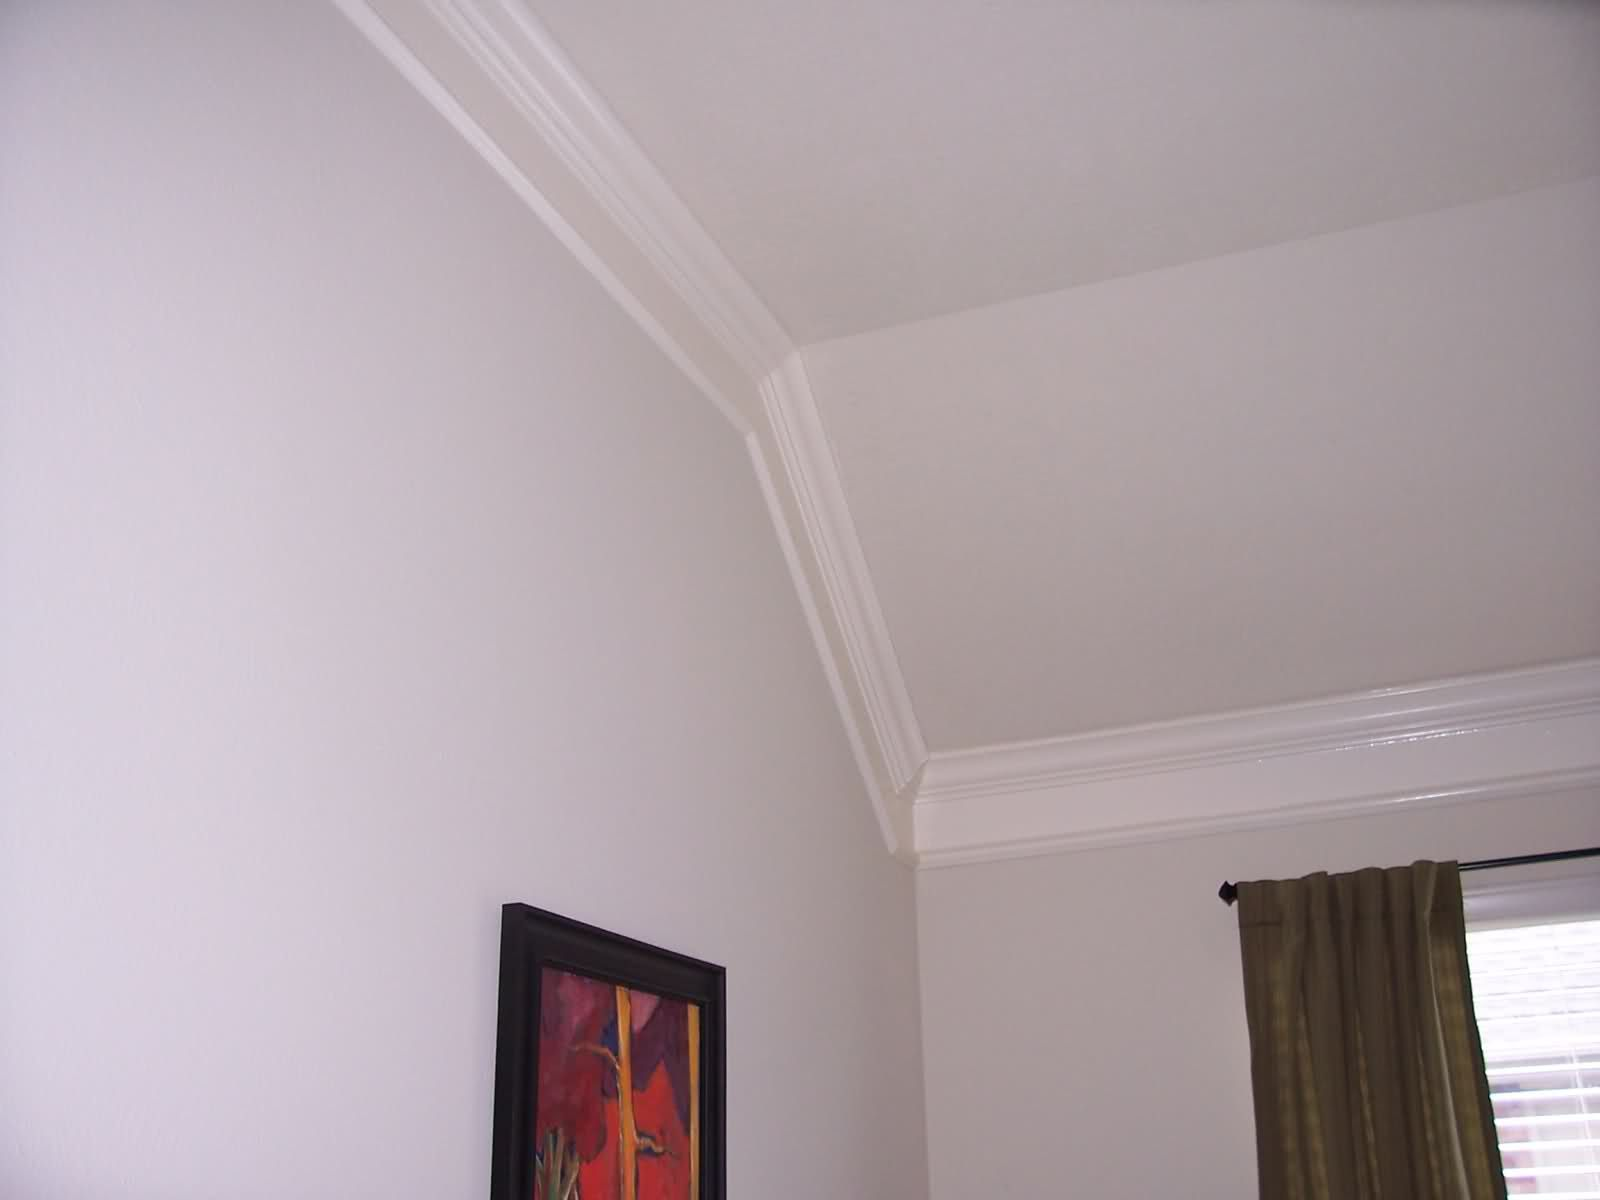 How to glue the ceiling plinth foam